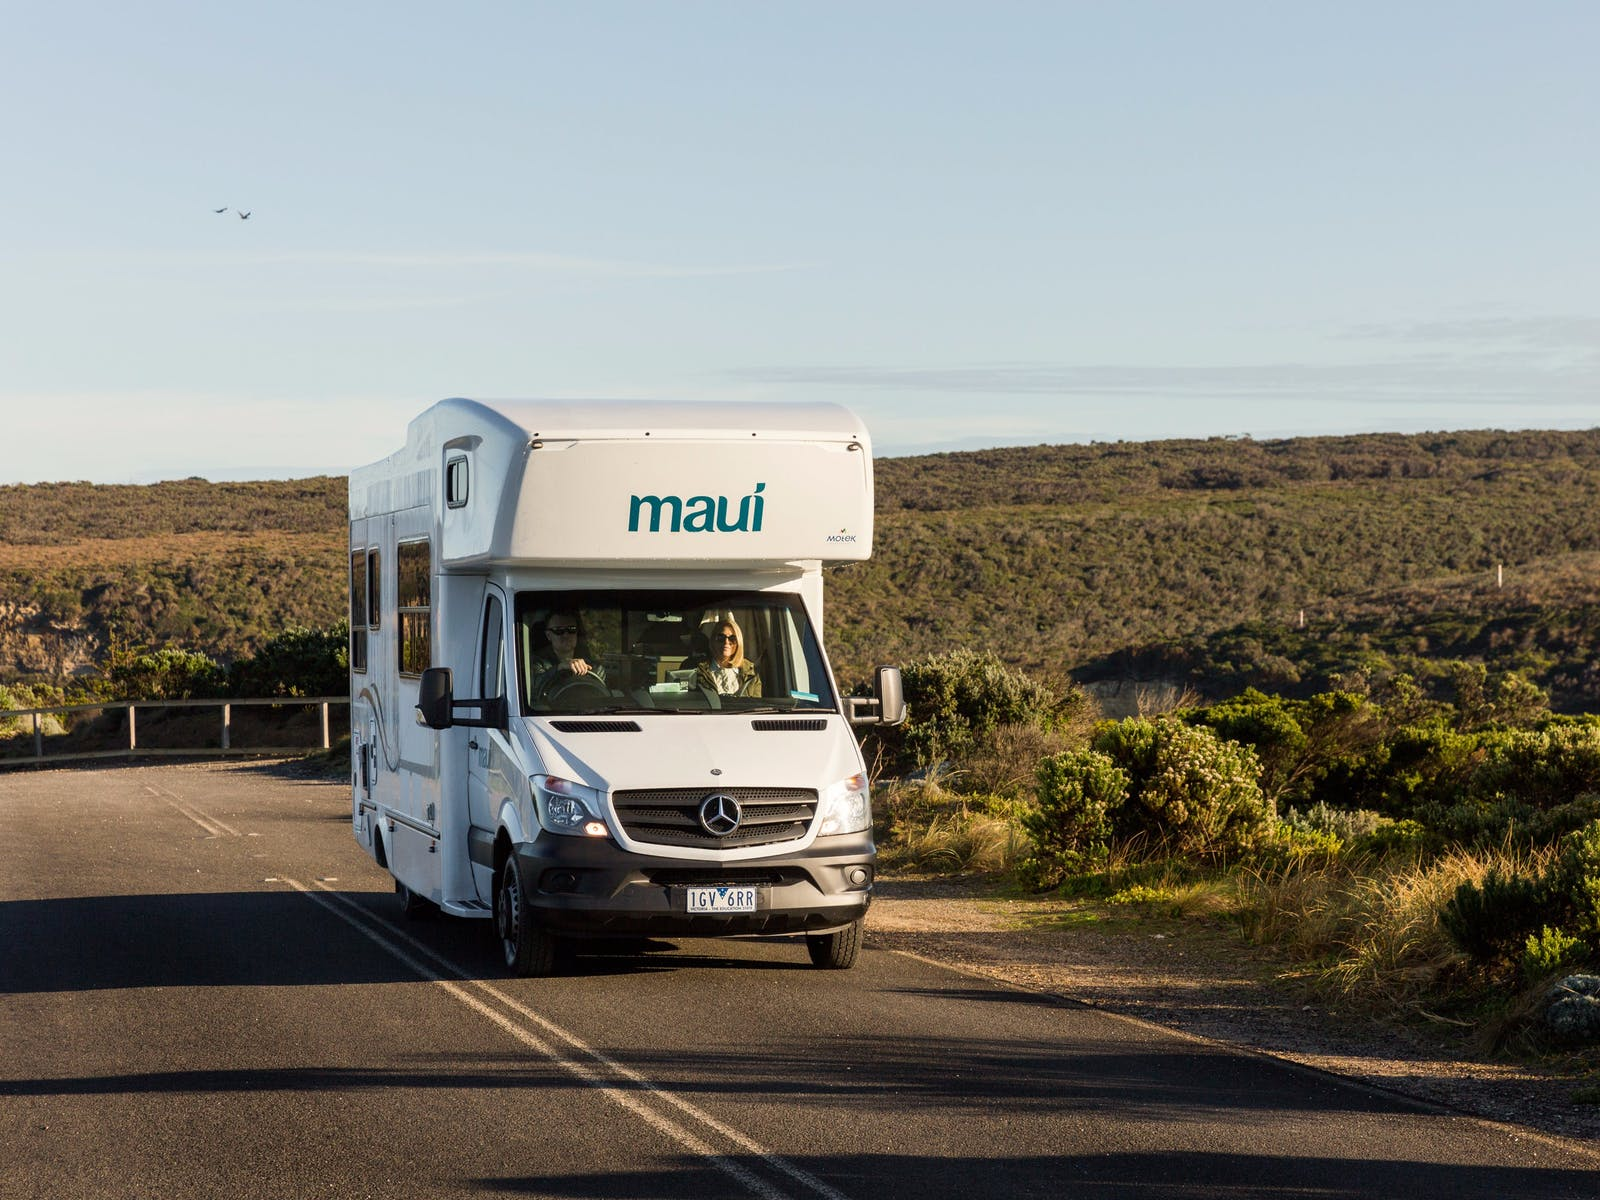 maui campervan on the road